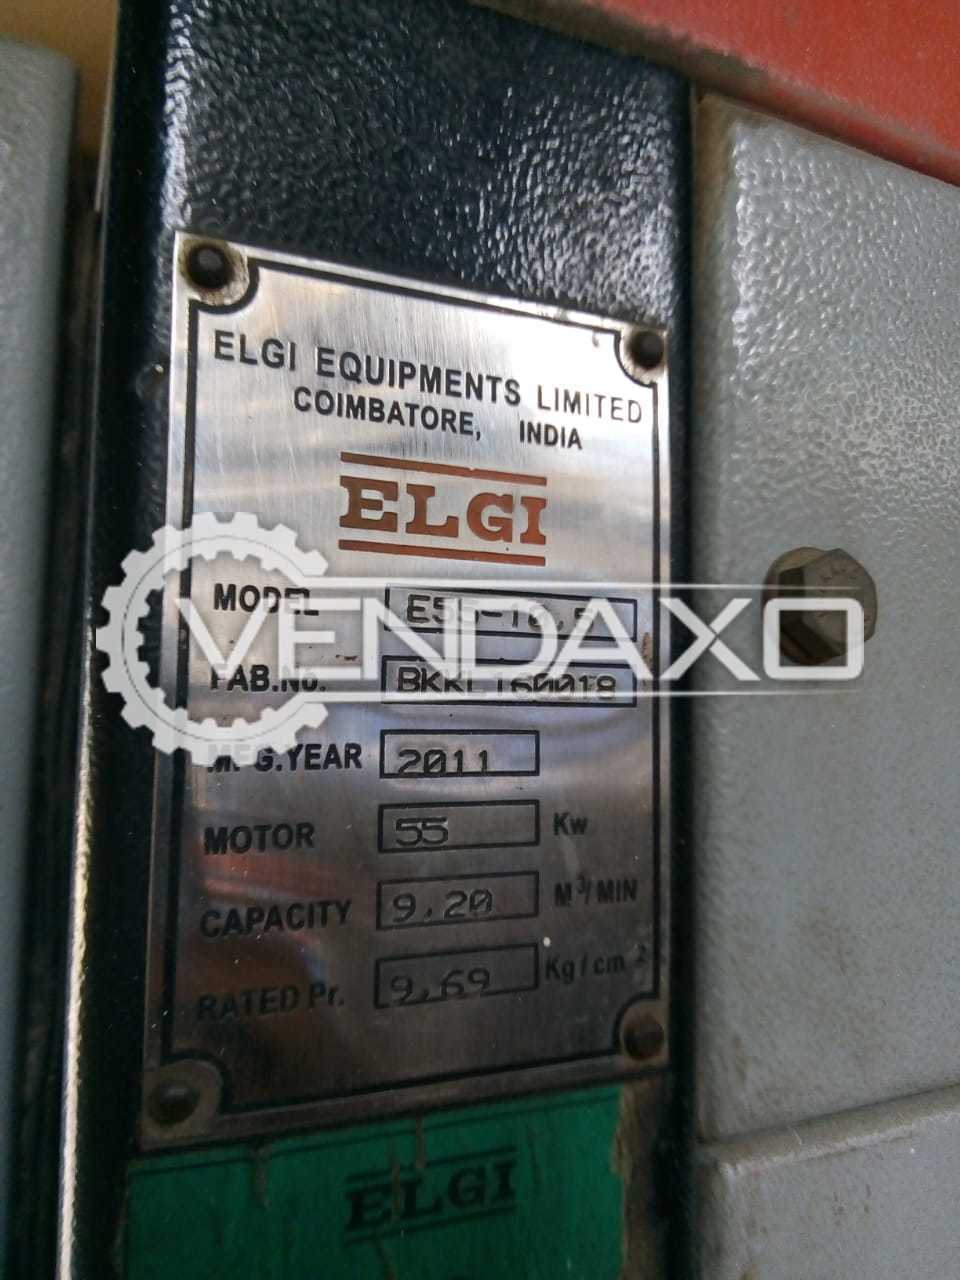 Elgi E55-10.5 Rotary Screw Air Compressor - 55 KW , 75 HP , 2011 Model